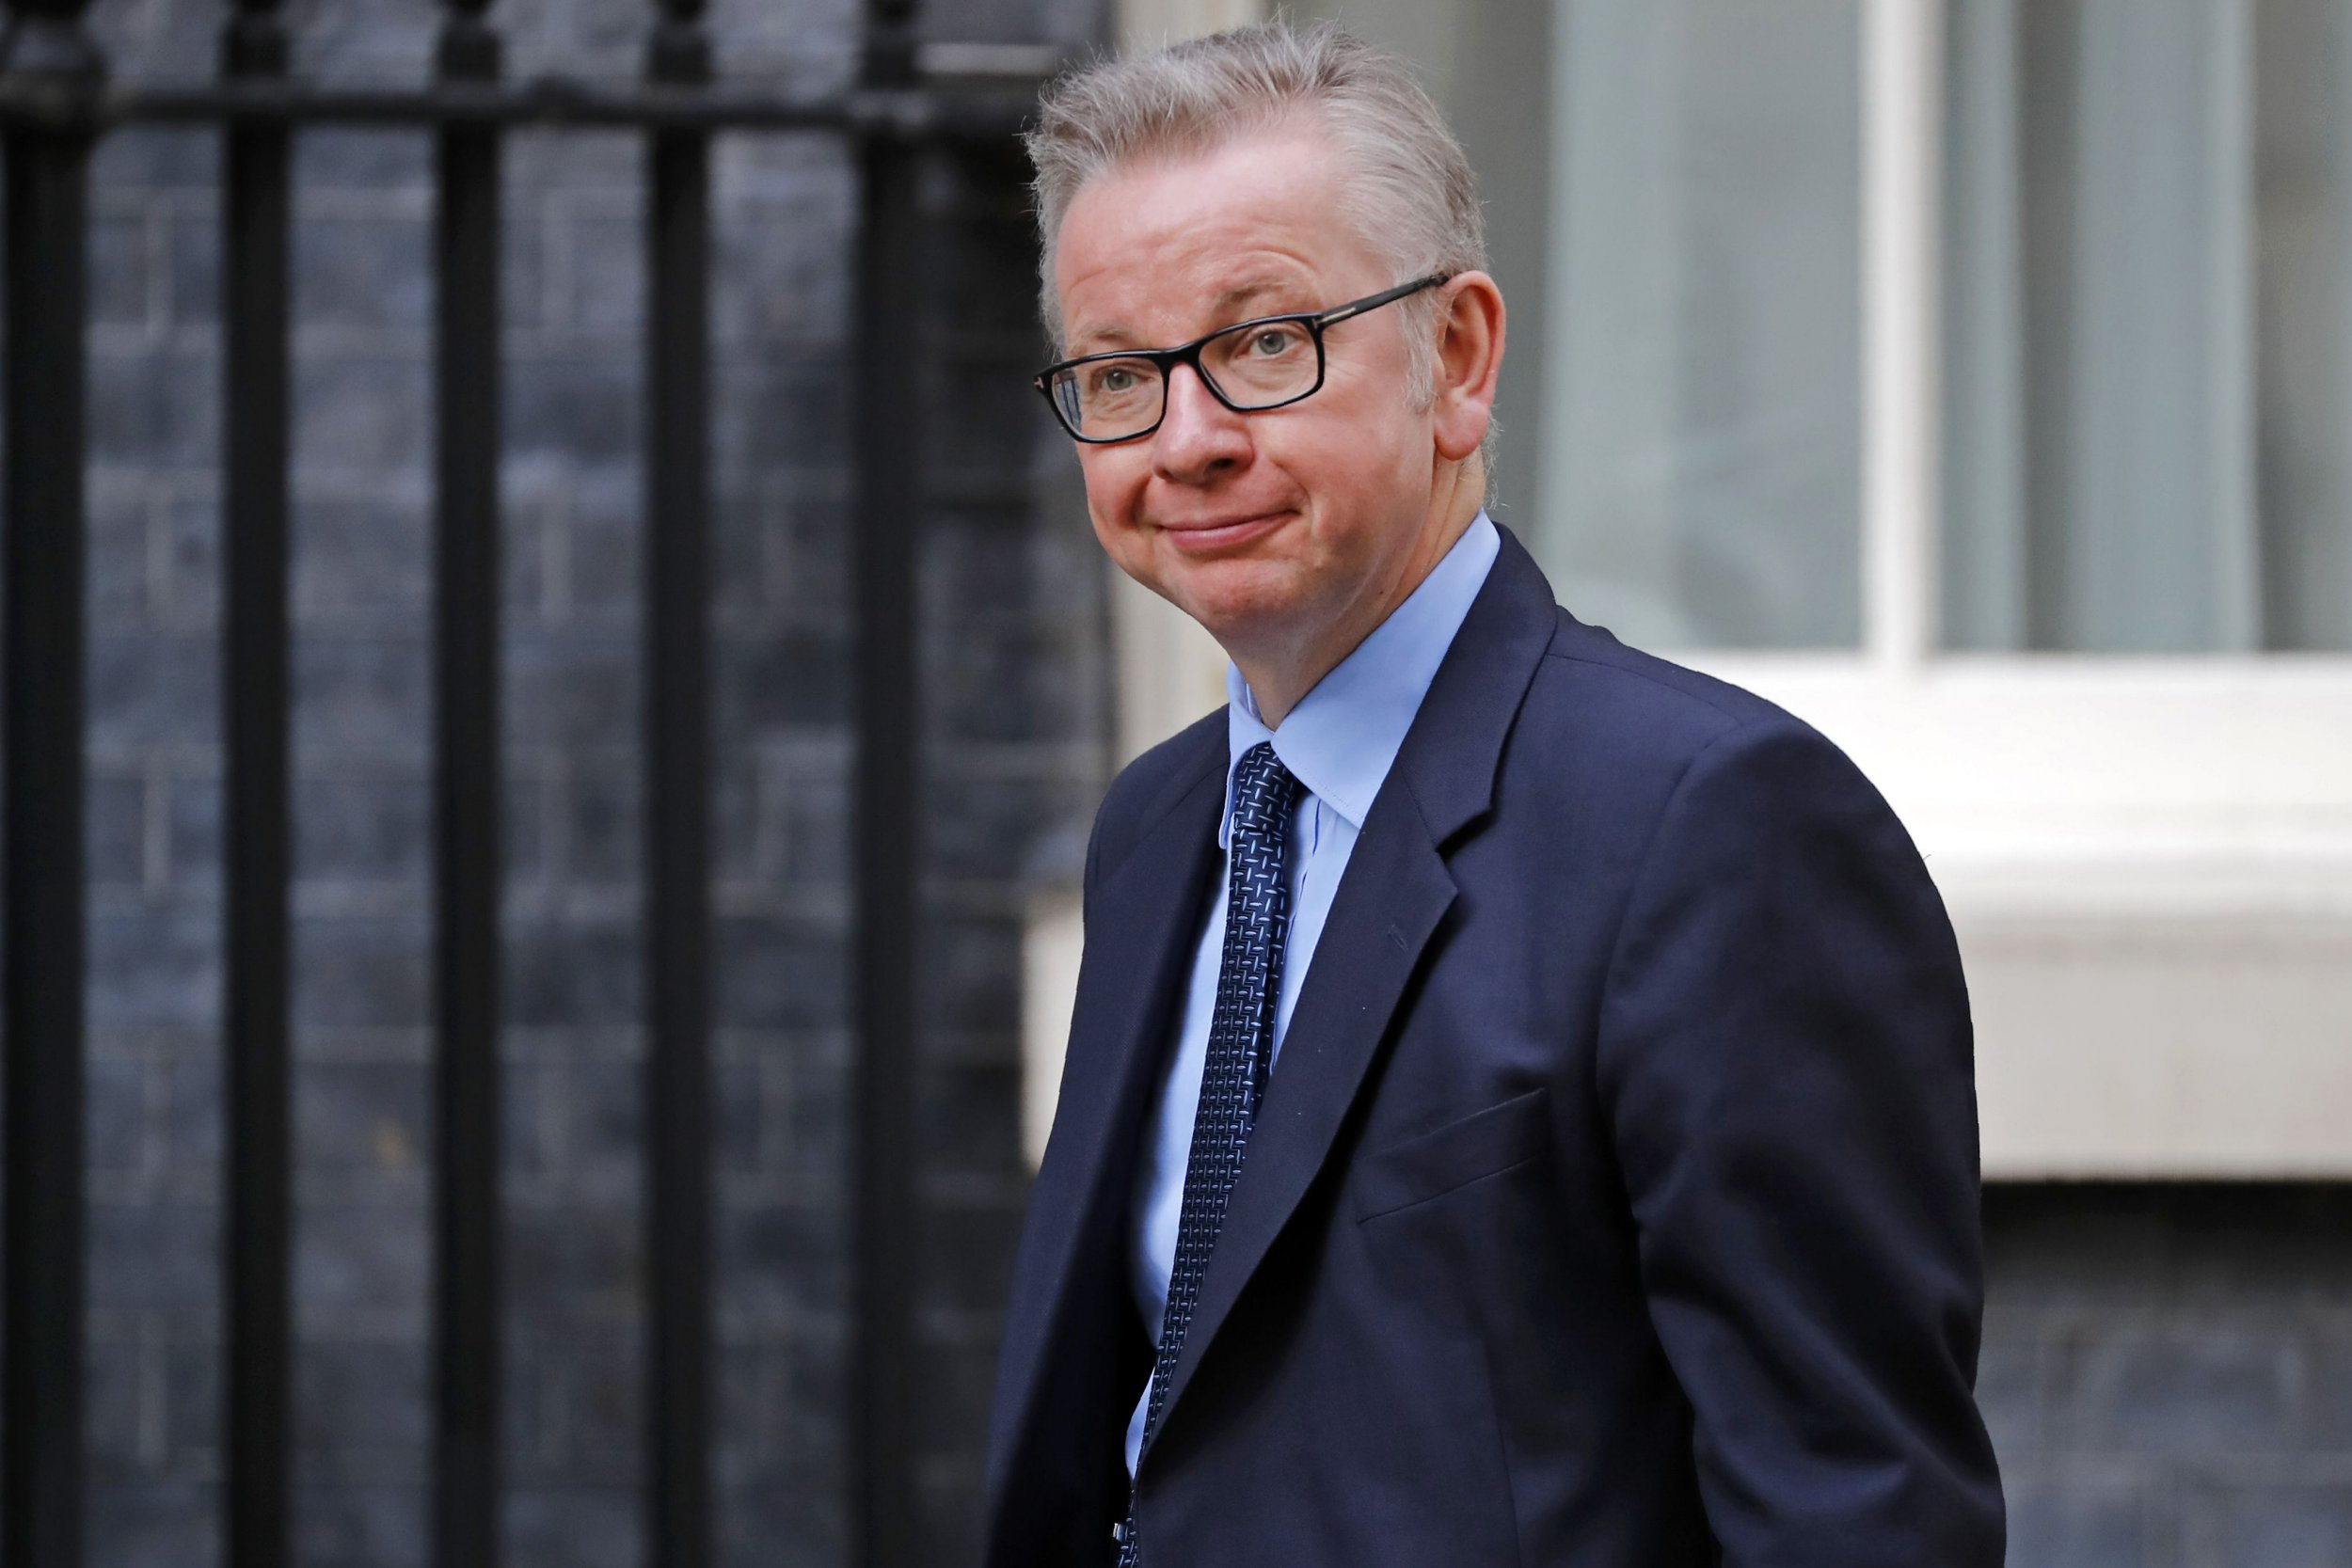 Britain's Environment, Food and Rural Affairs Secretary Michael Gove walks toward 10 Downing Street in London on October 24, 2018 to attend a meeting. - UK businesses have run out of time to prepare for the consequences of Britain leaving the European Union in March without an exit deal, a government audit showed on Wednesday. The findings by the National Audit Office, the government's spending watchdog, were published with London and Brussels at loggerheads in Brexit talks. (Photo by Tolga AKMEN / AFP)TOLGA AKMEN/AFP/Getty Images